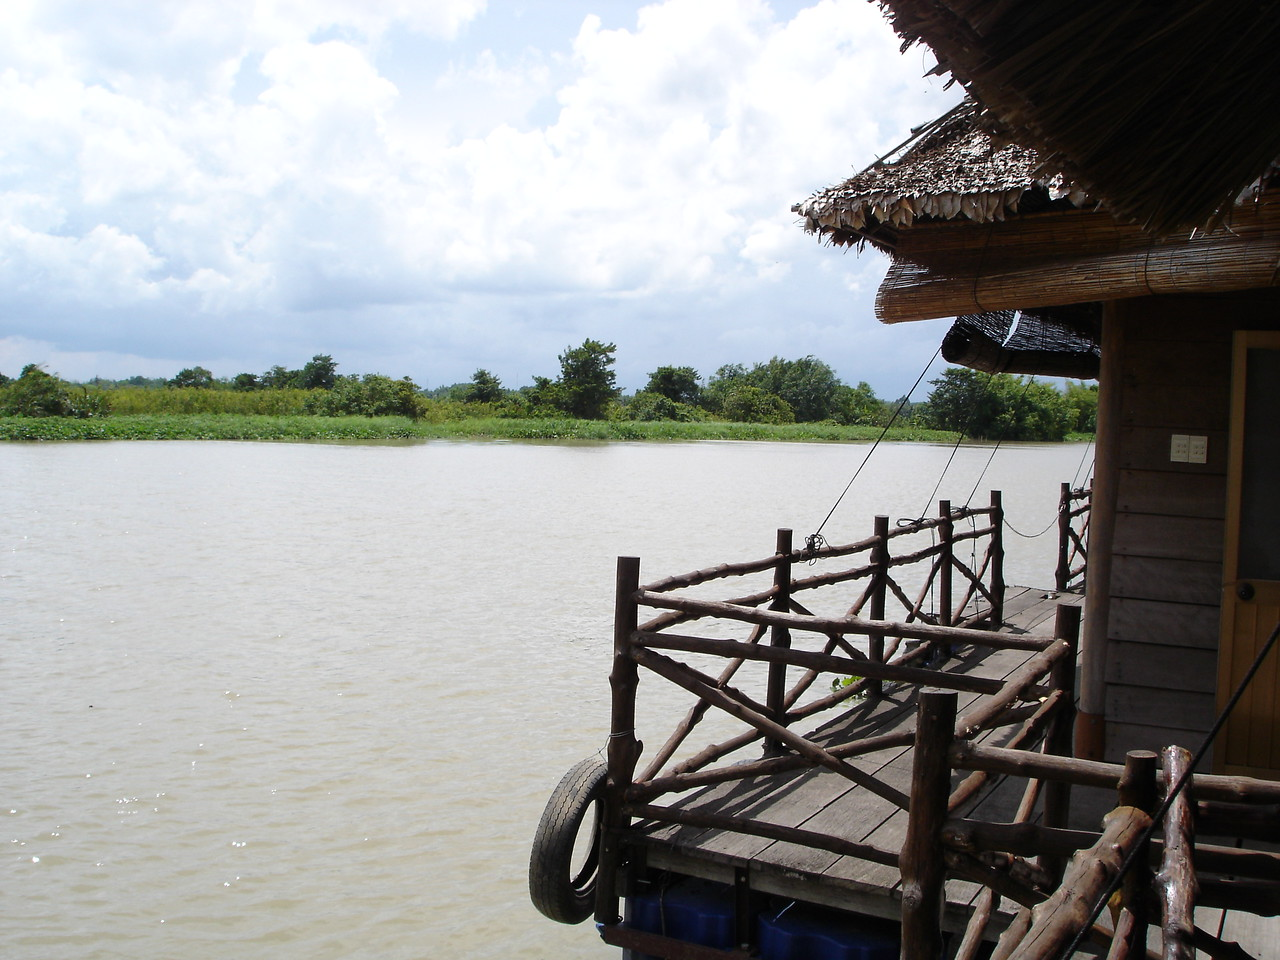 At a riverside resturant on the Saigon River near Cu Chi.